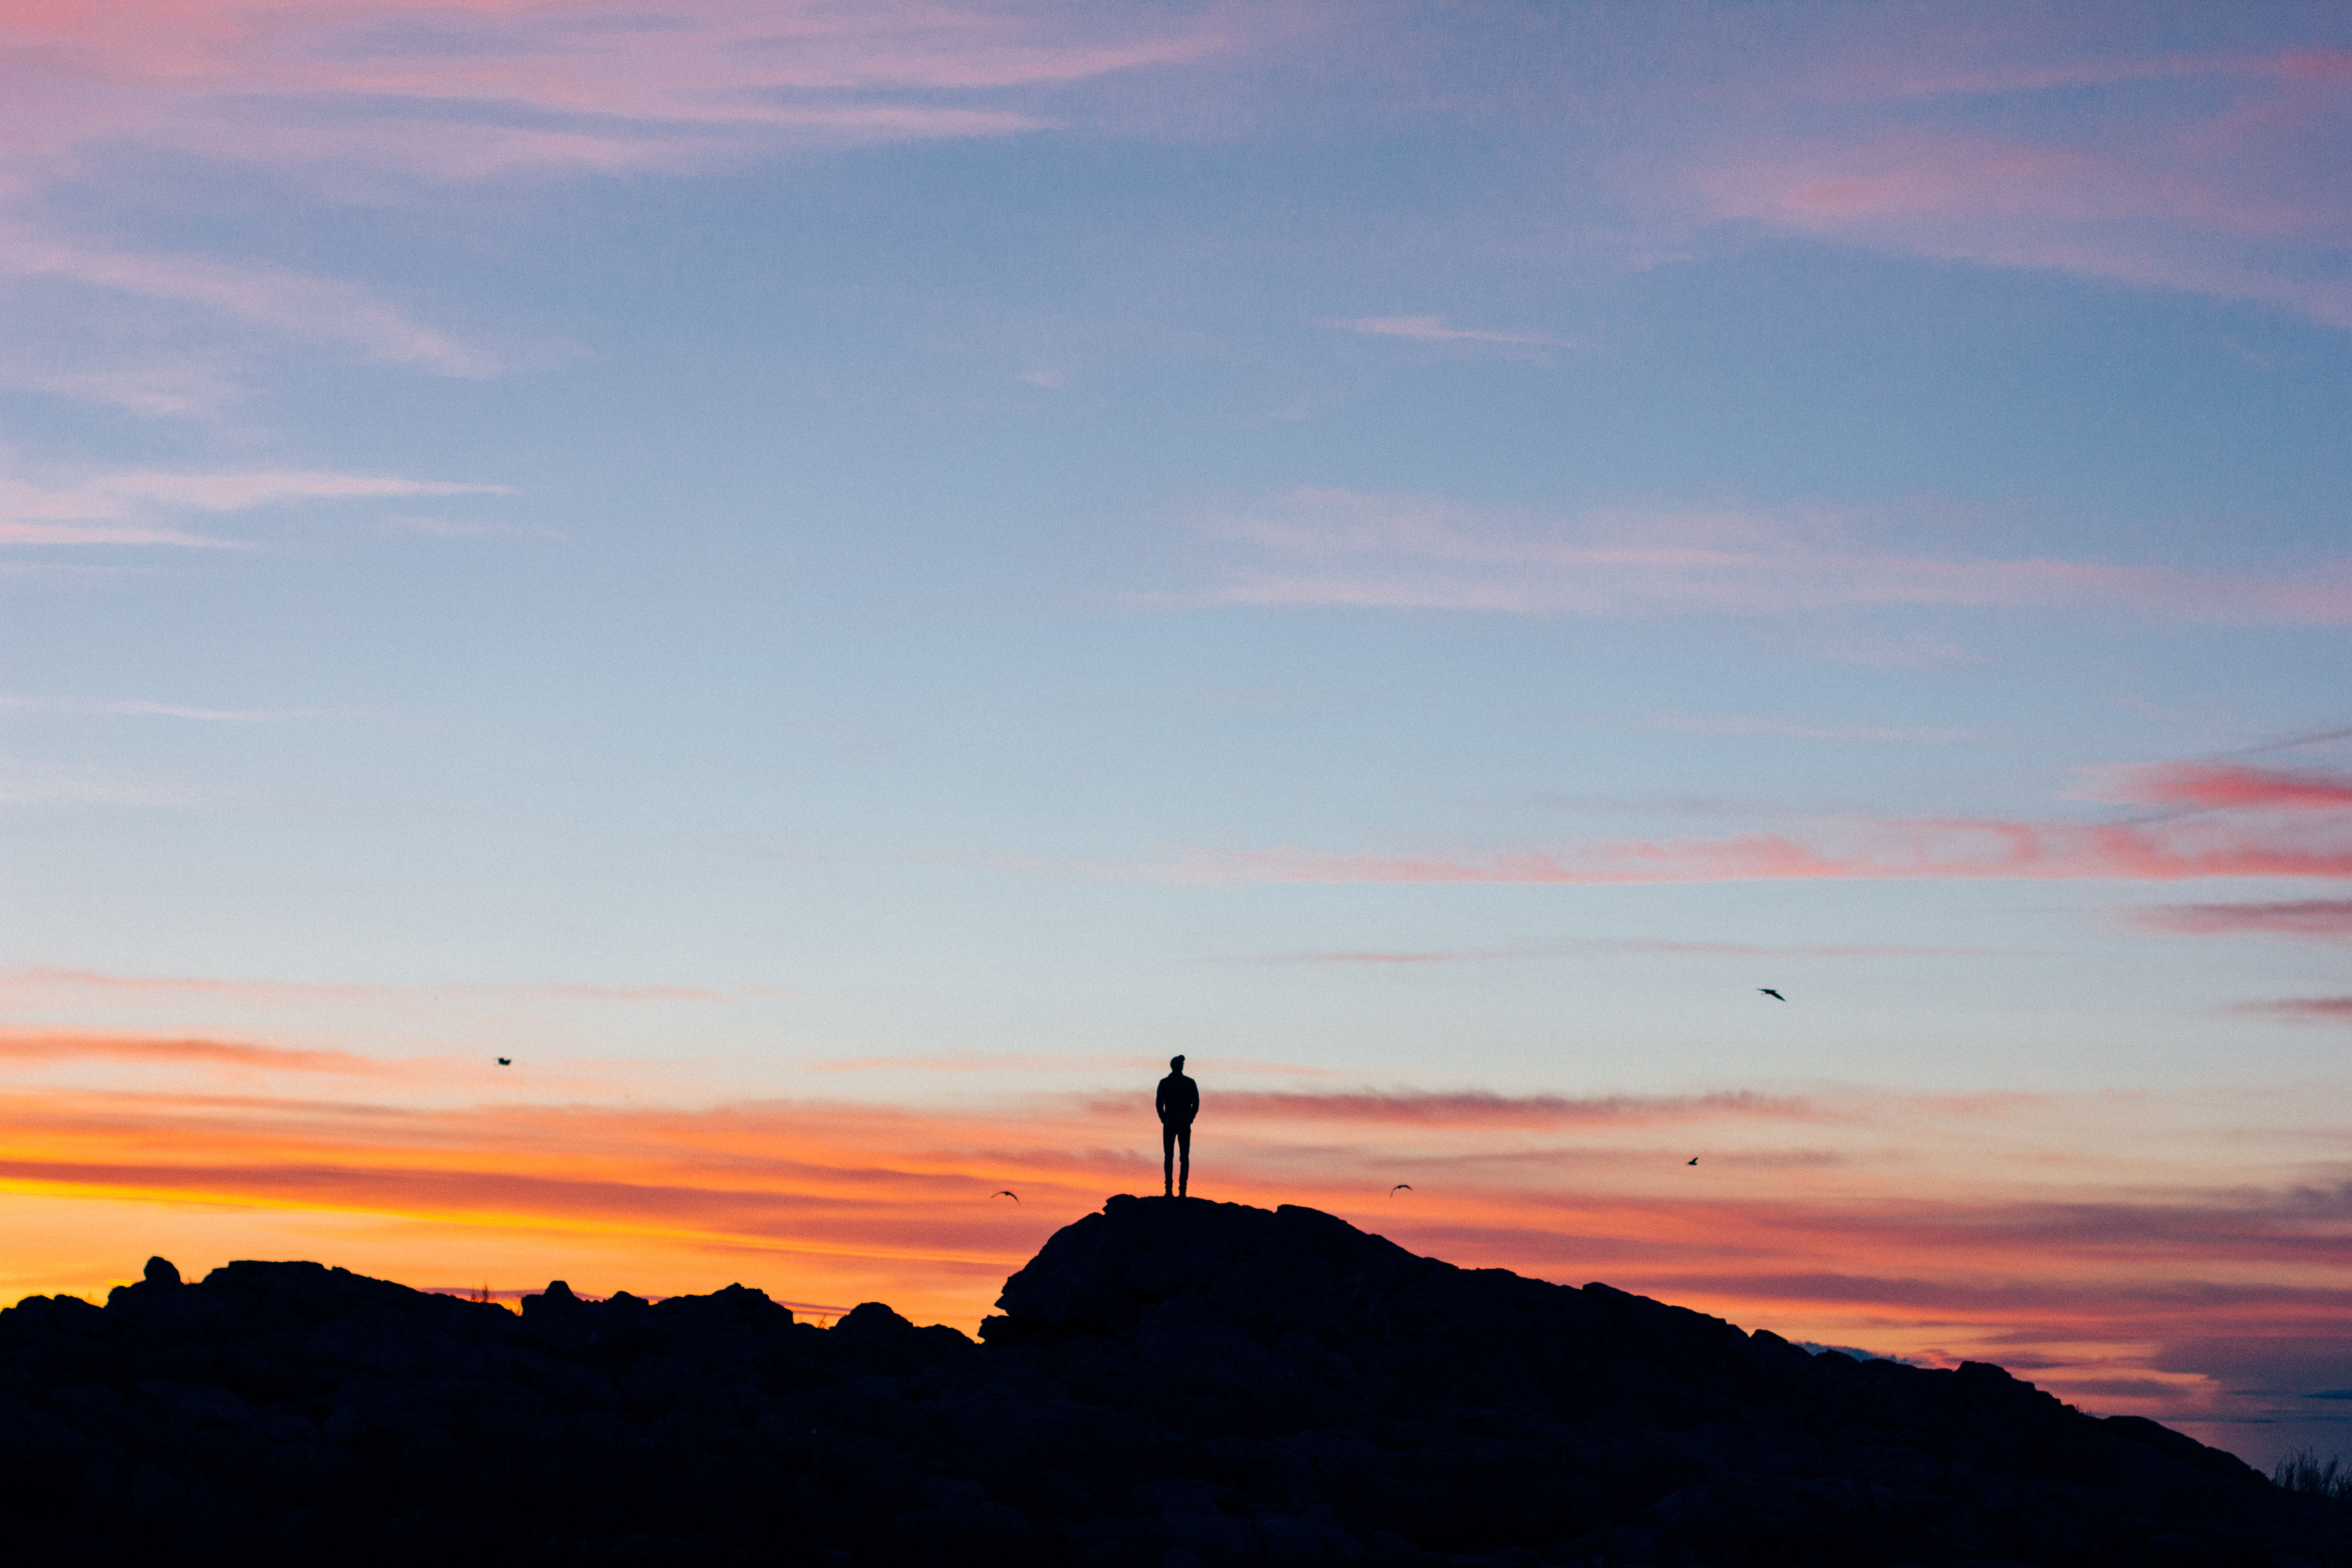 silhouette photography of man on mountain